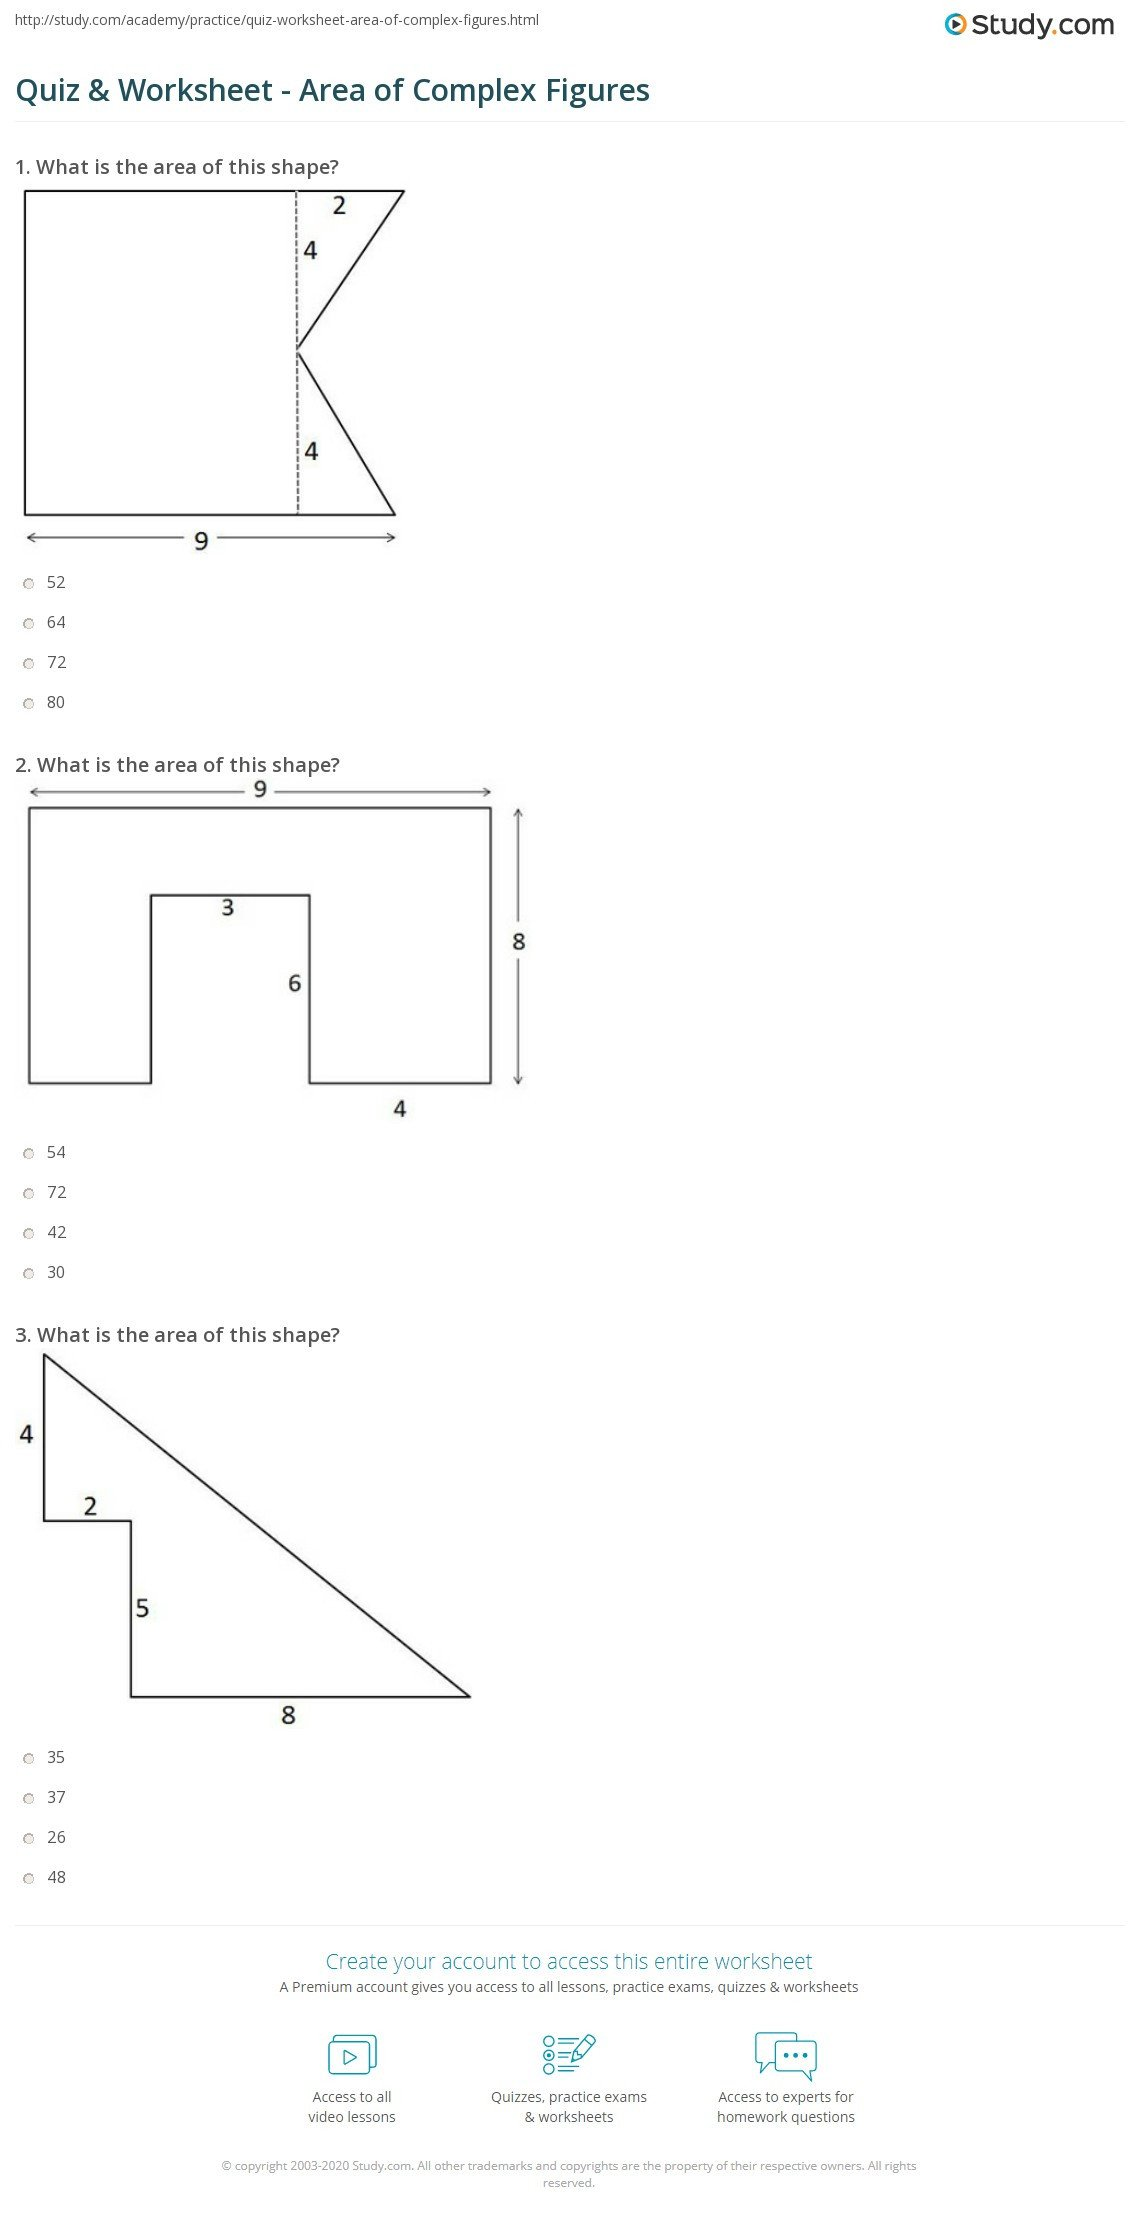 quiz worksheet area of plex figures